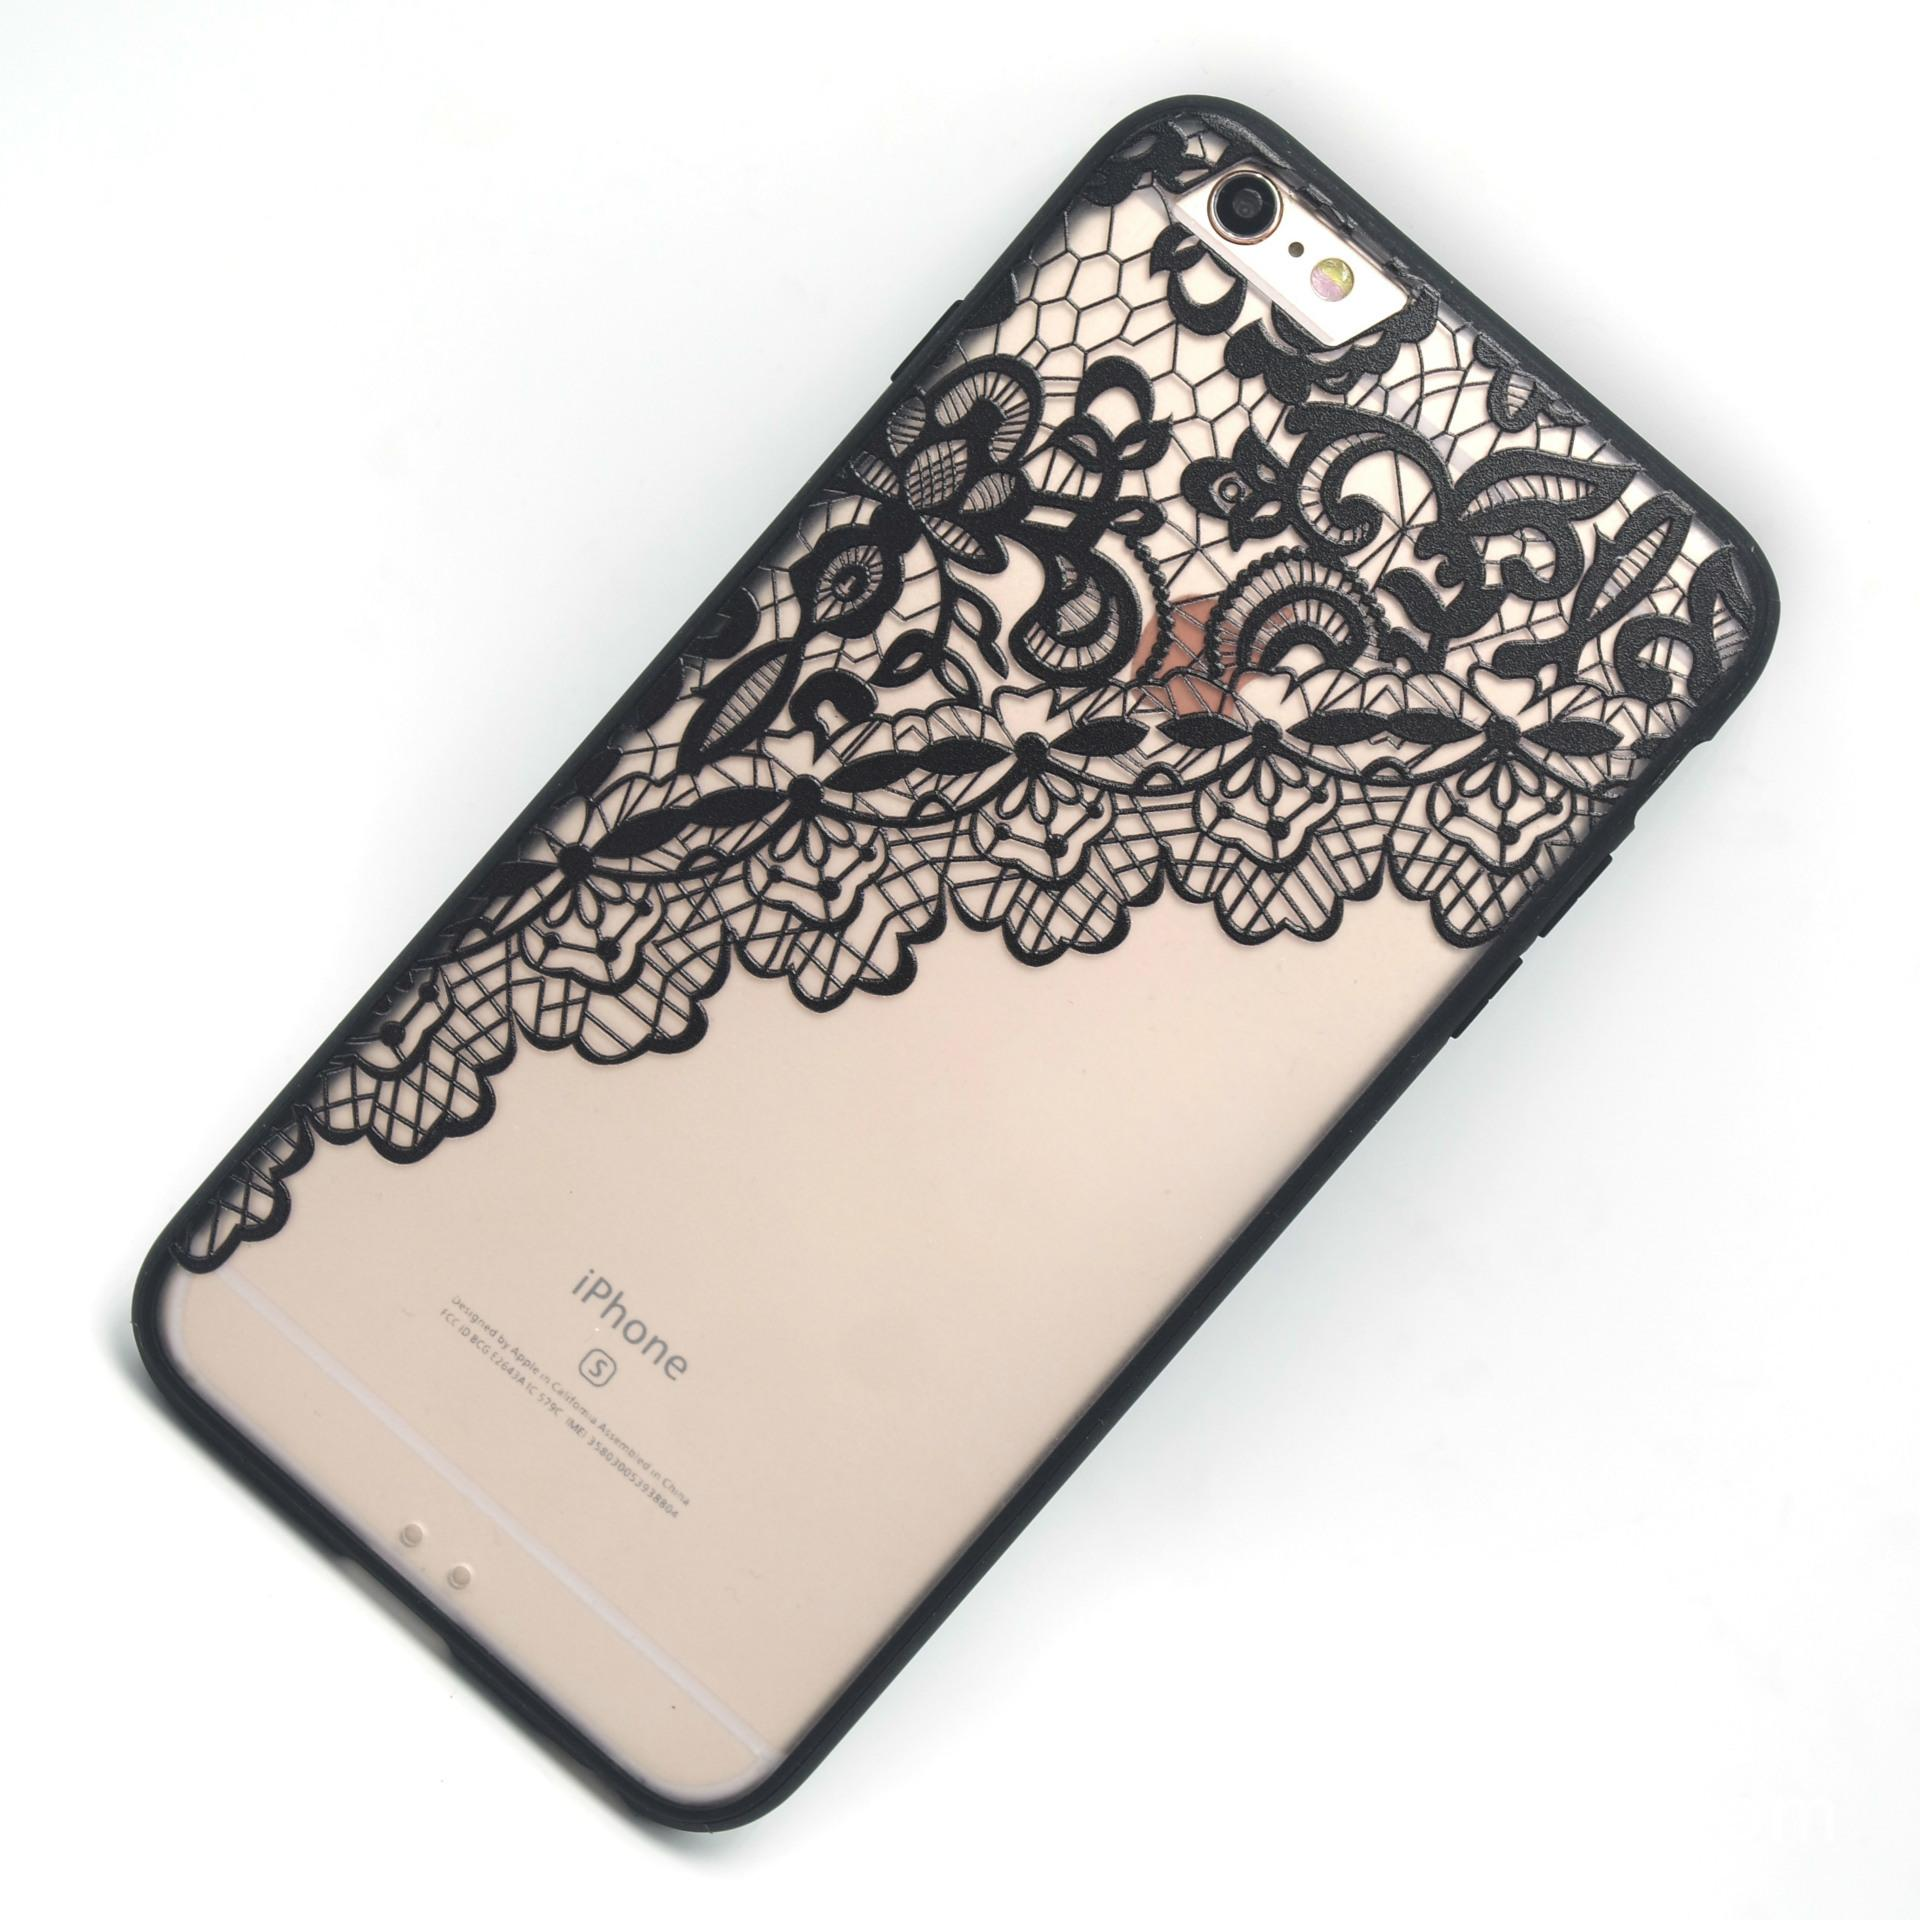 For iphone 6s cases iphone 6 plus cases simple style for 3d decoration for phone cases